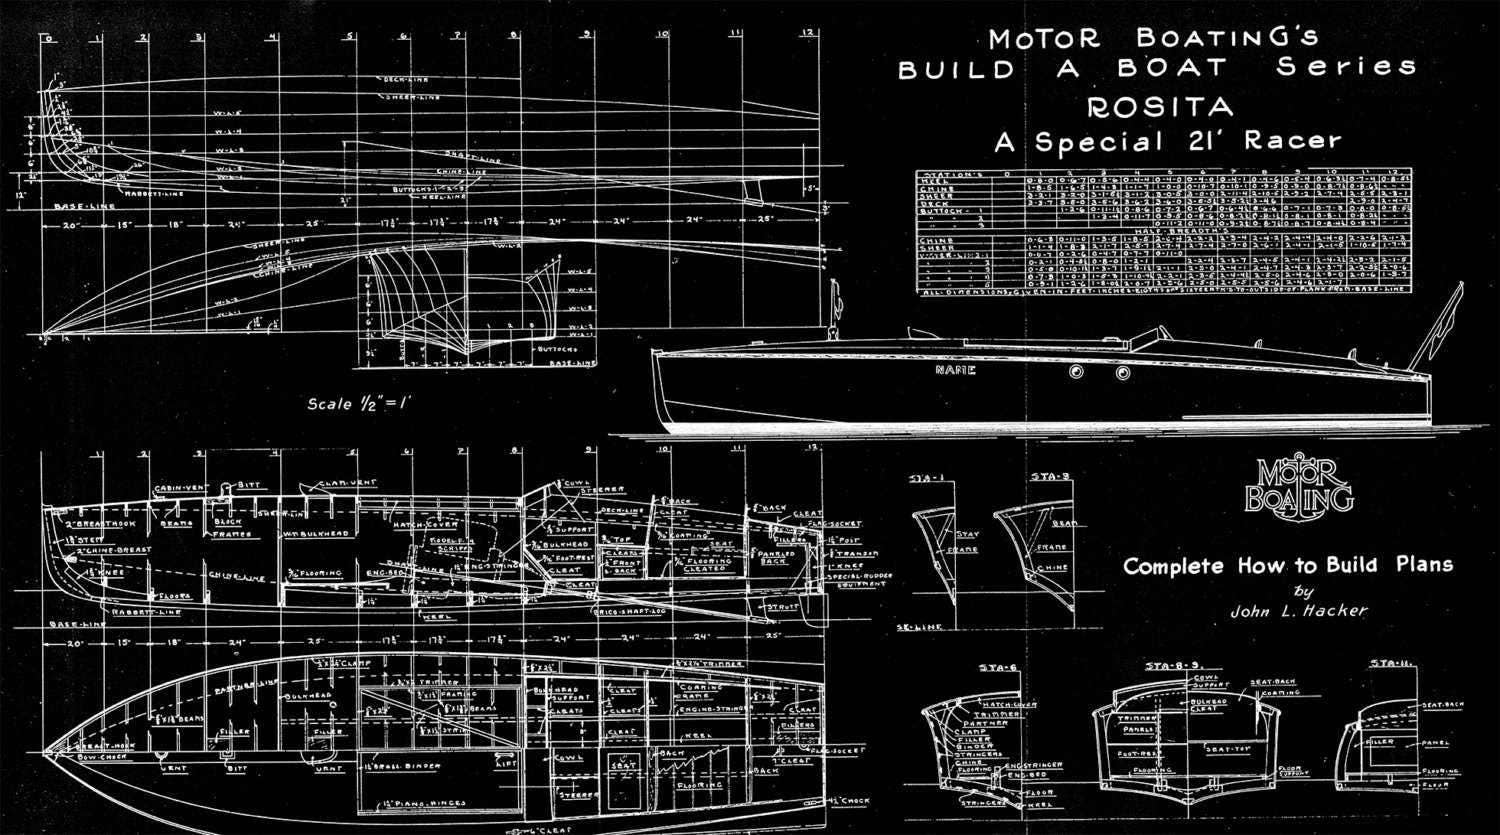 Vintage print of rosita runabout diagram line drawing schematic vintage print of rosita runabout diagram line drawing schematic blueprint on matte paper photo paper or stretched canvas malvernweather Image collections